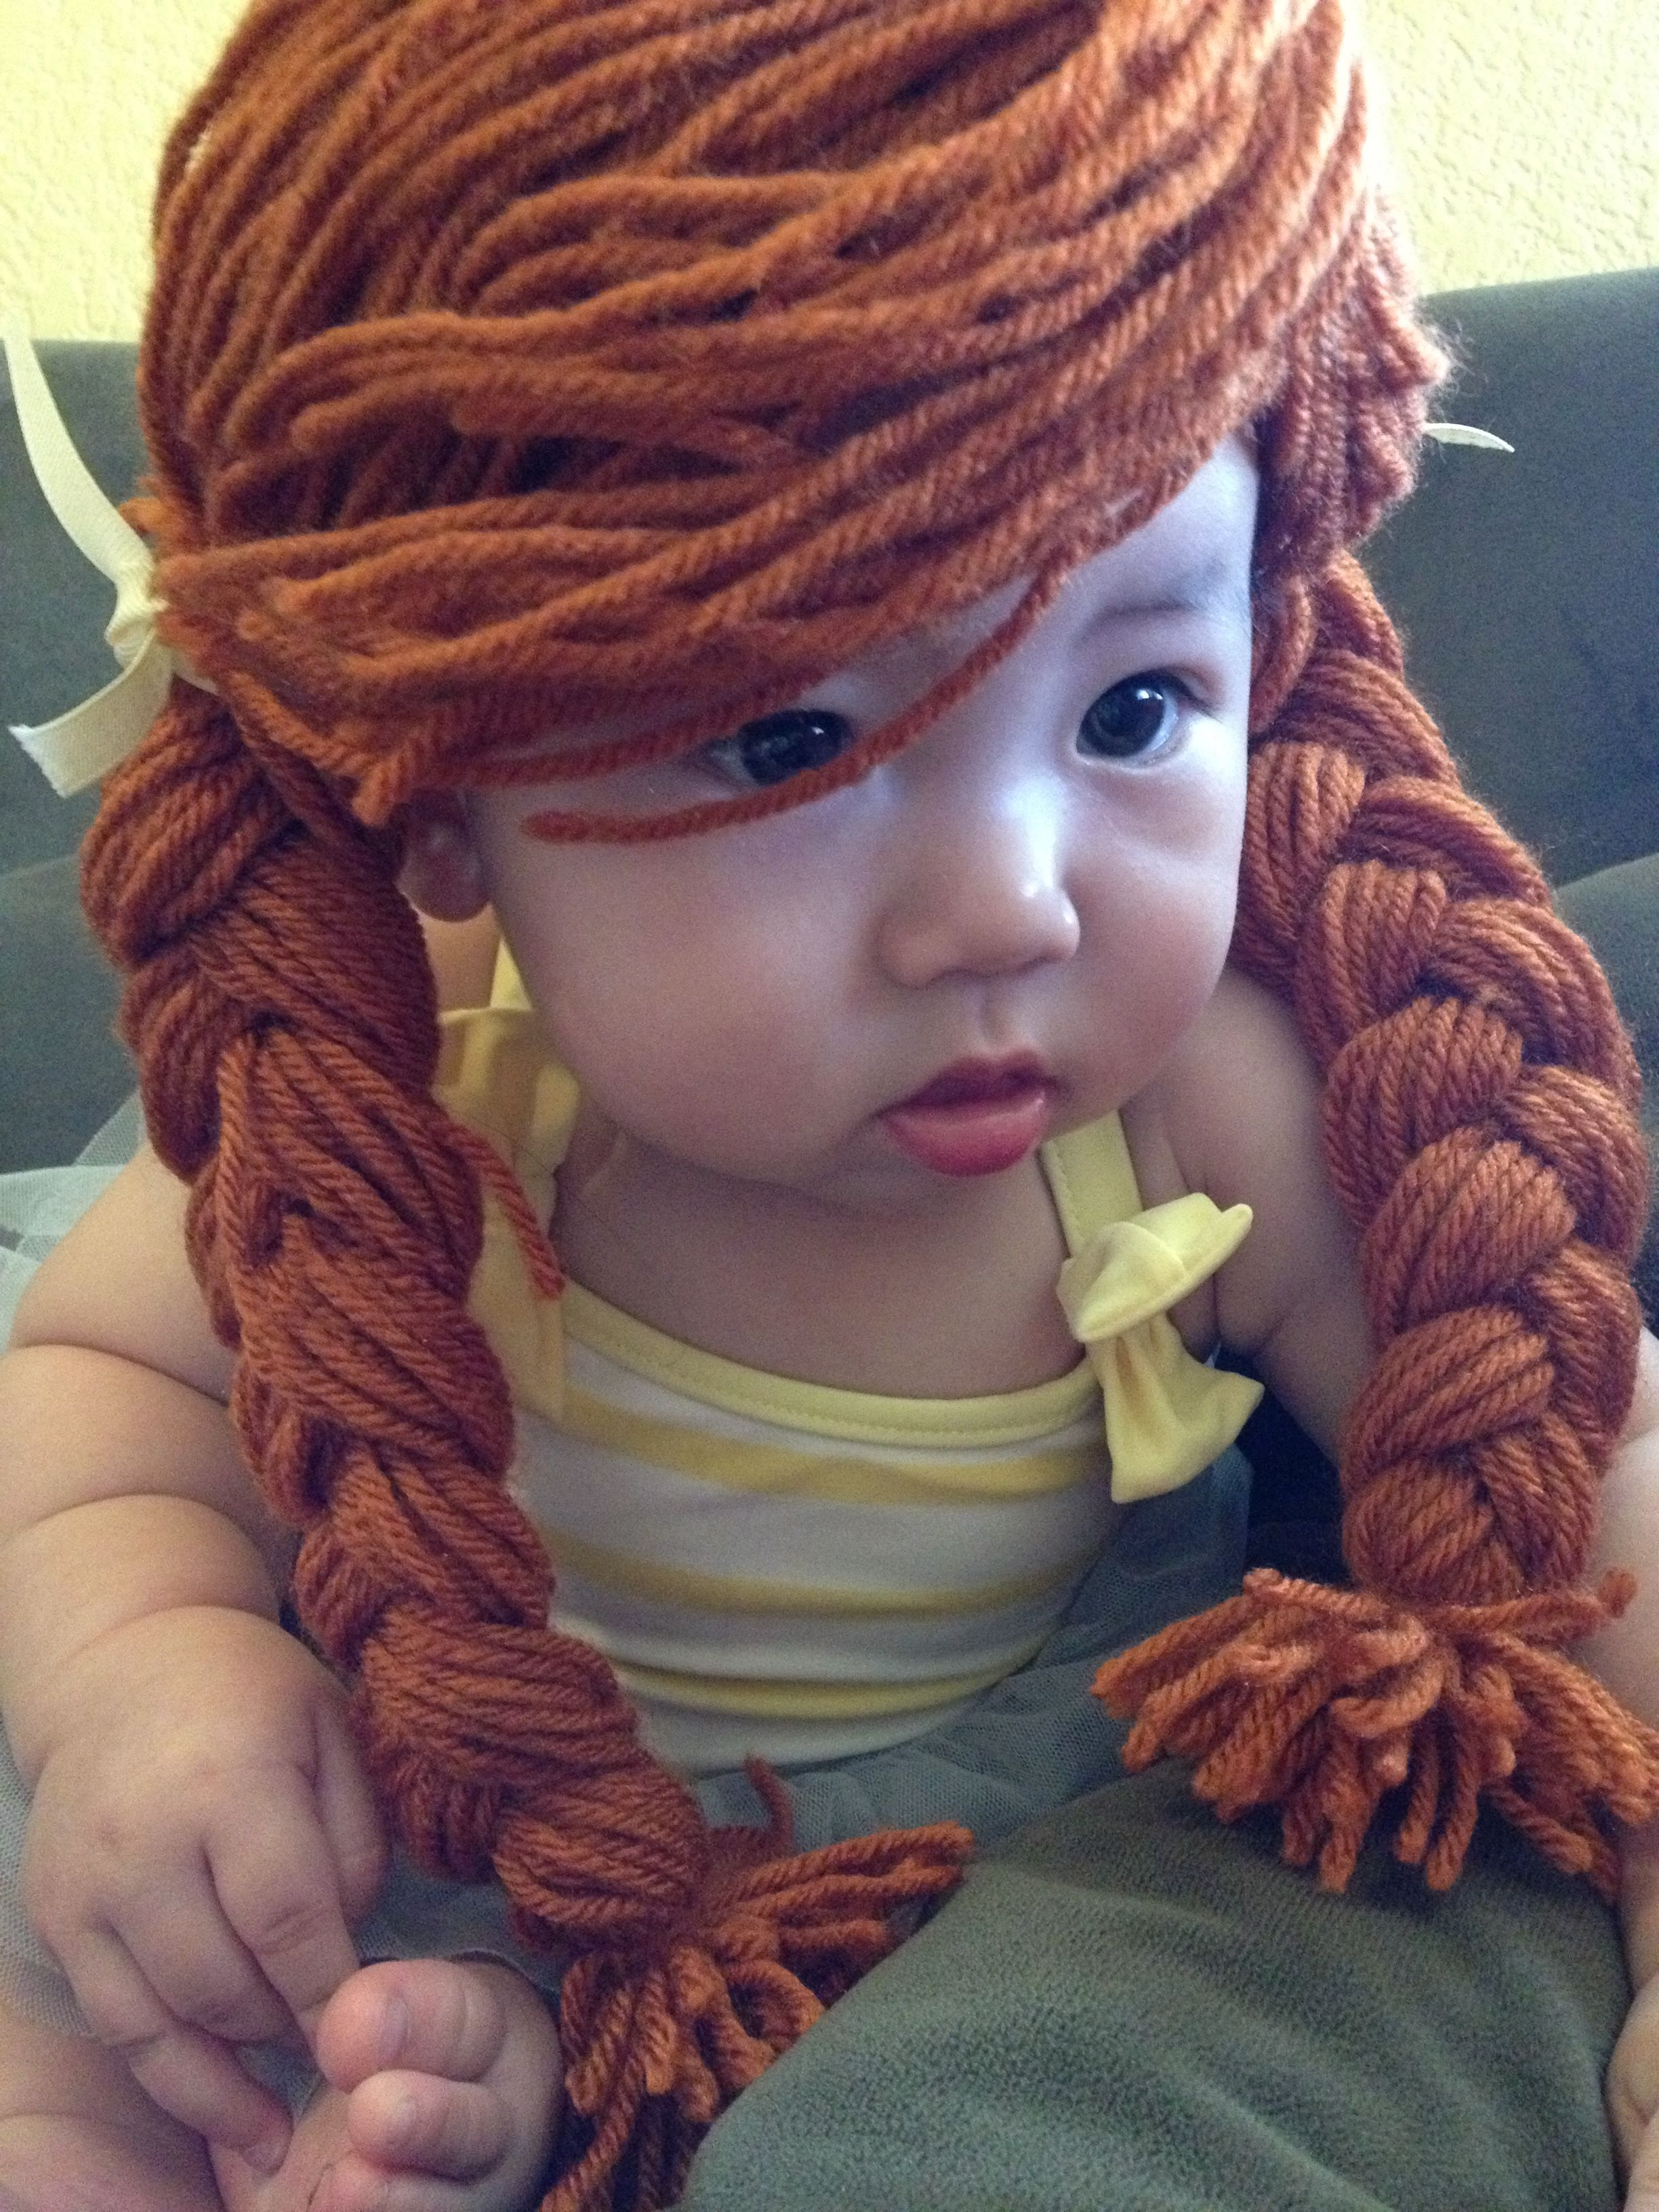 Cabbage patch yarn wig with braided pigtails | Yarn Wigs | Pinterest ...